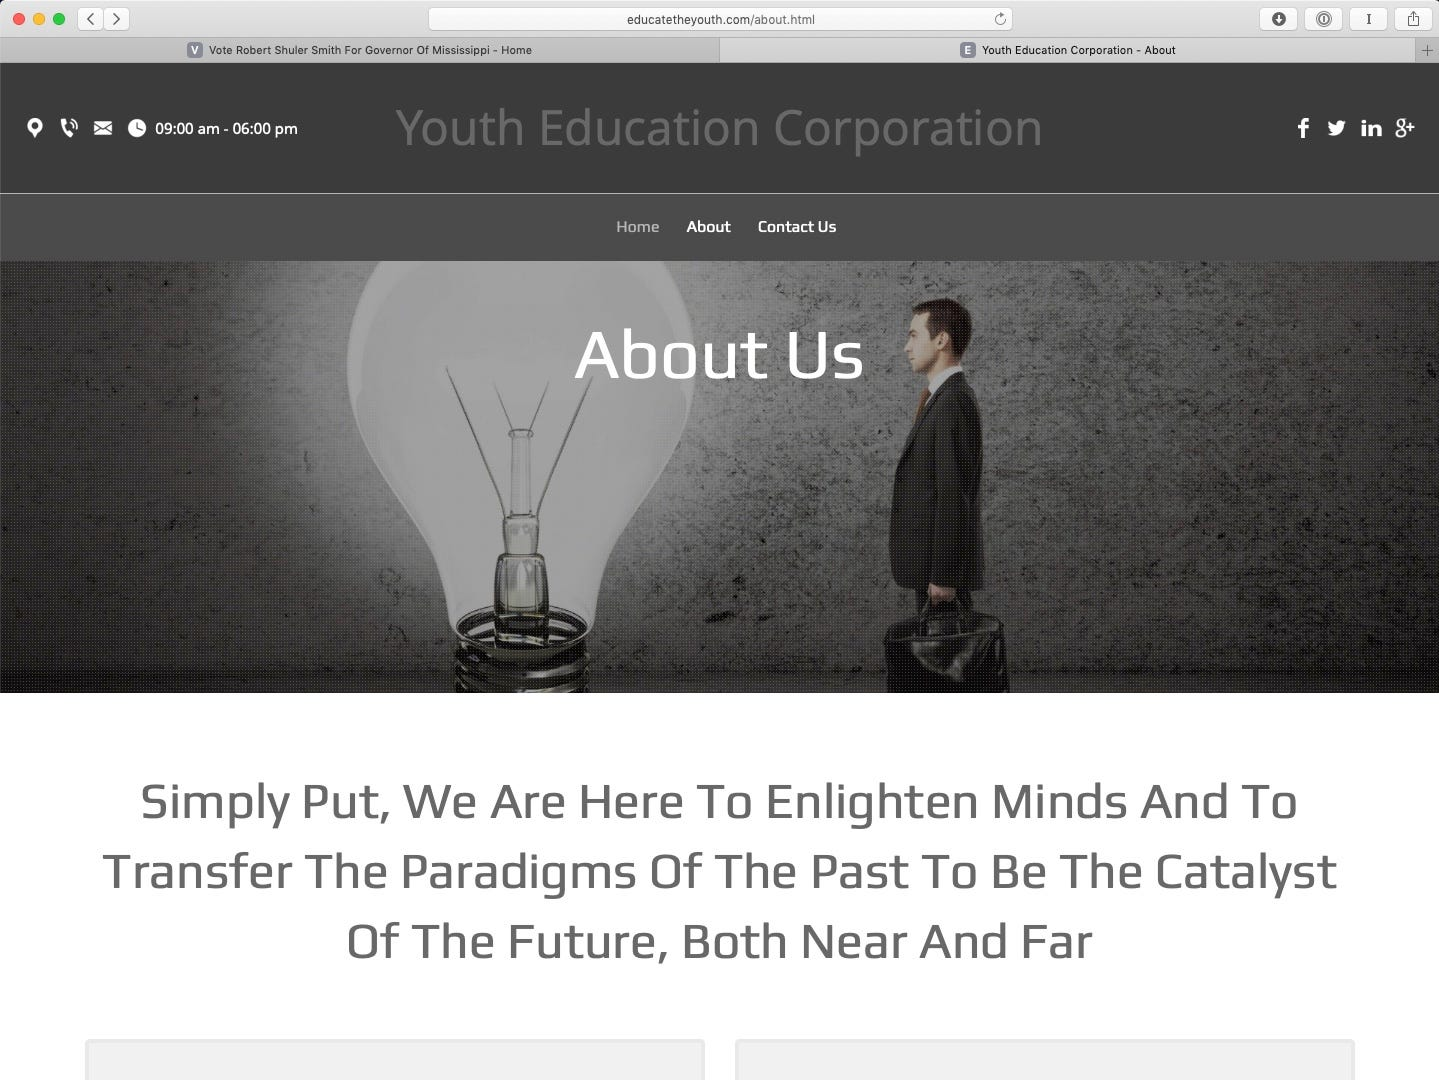 As seen in this March 21, 2019, screenshot, a website for Youth Education Corporation of Chicago features all three of the stock images above testimonials featured on the Robert Shuler Smith campaign website.